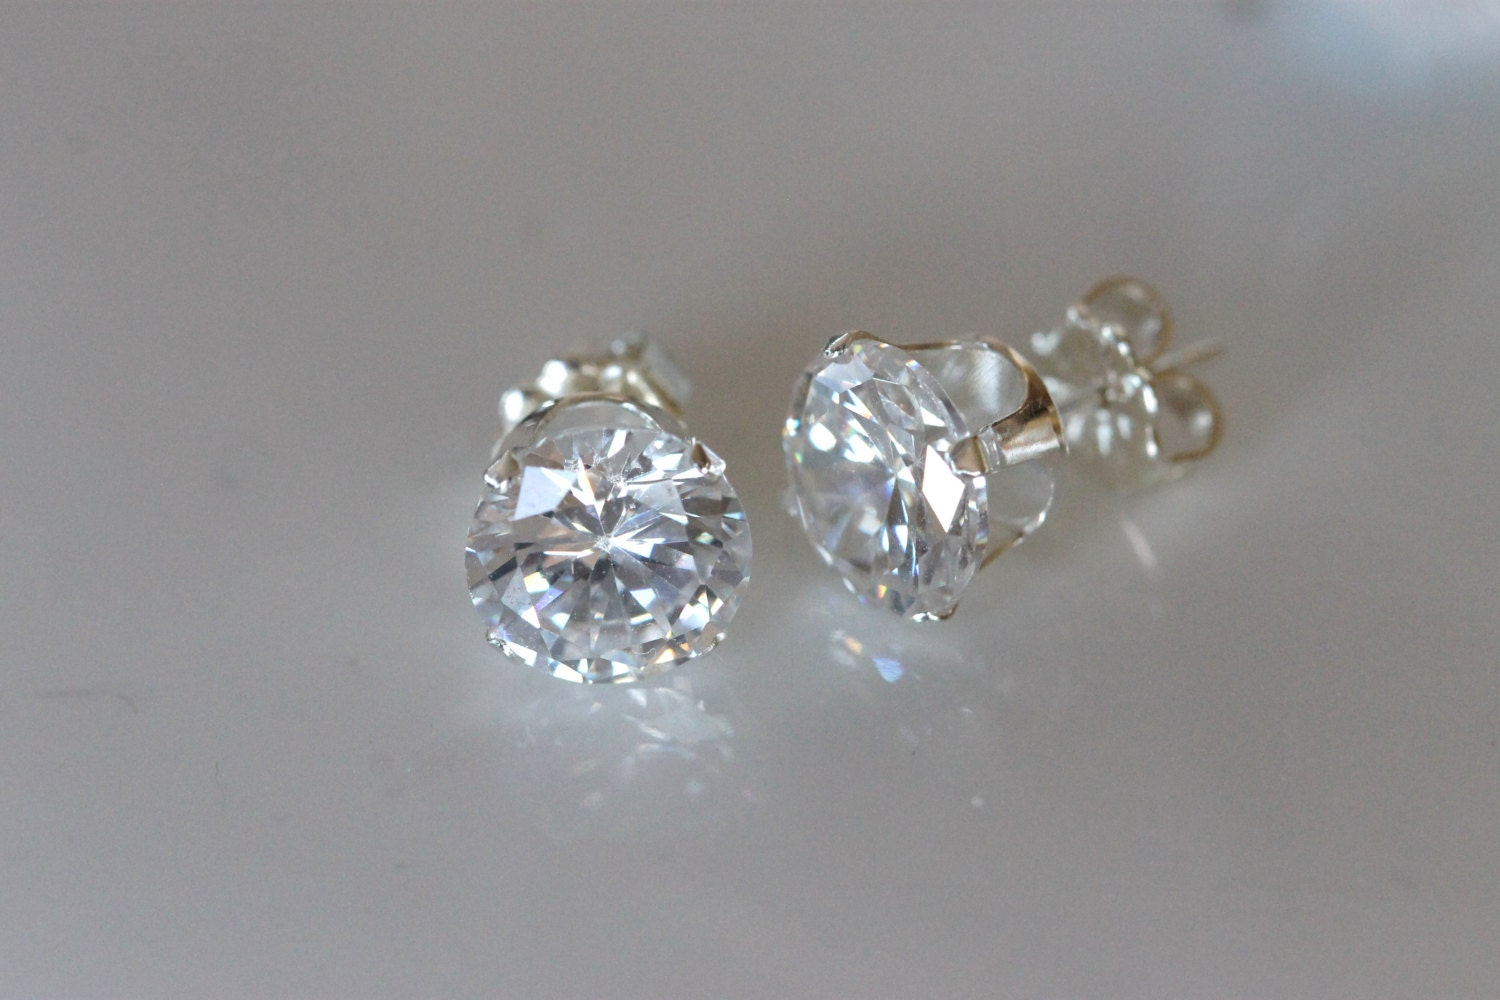 biggest wall large bat earrings studs basement source diamond